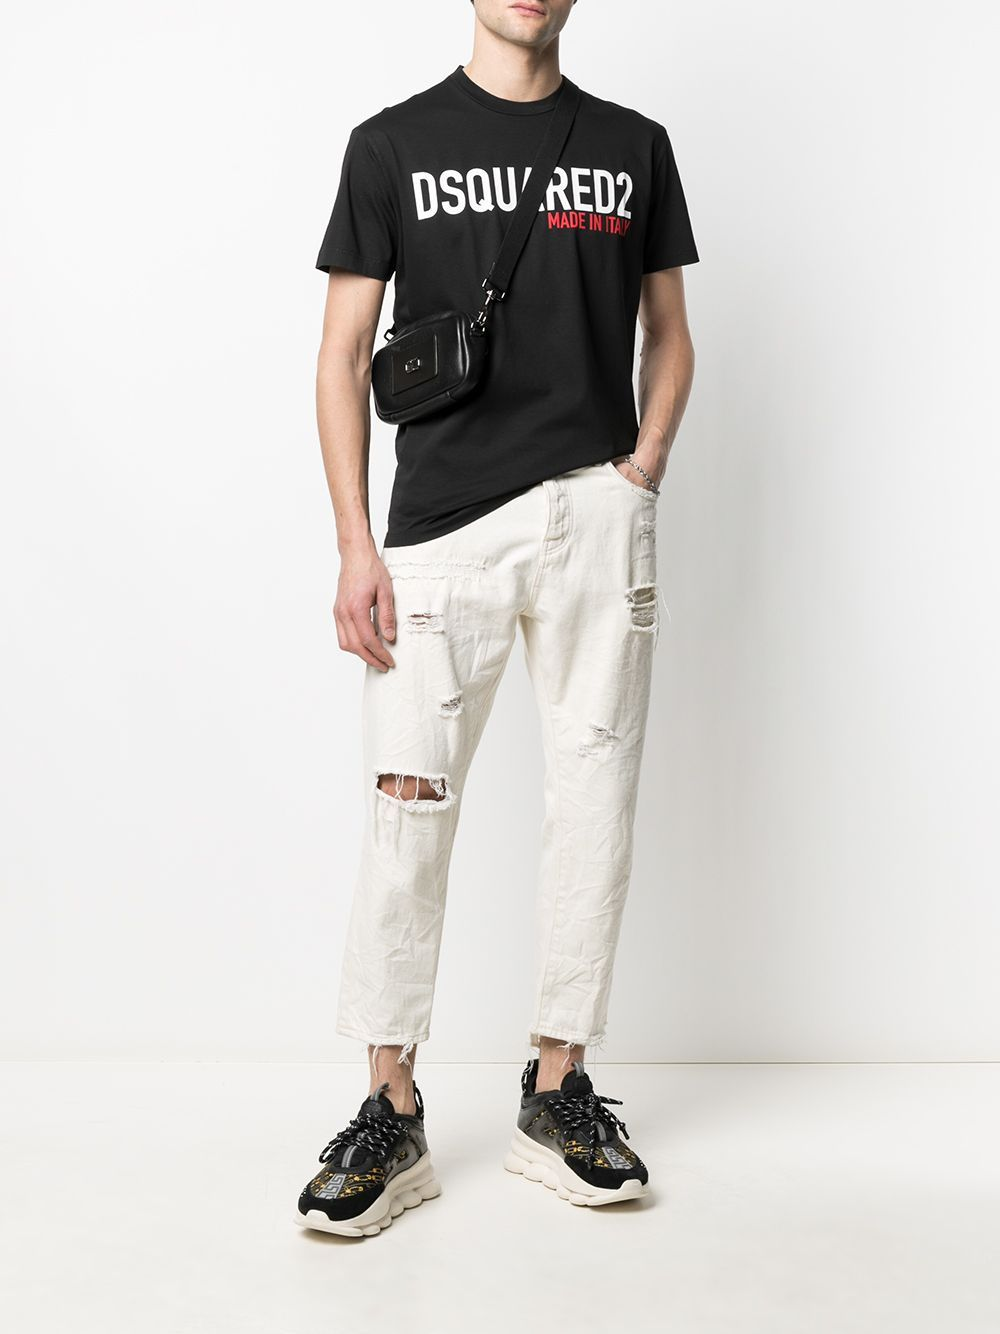 DSQUARED2 Made in Italy Logo T-Shirt Black